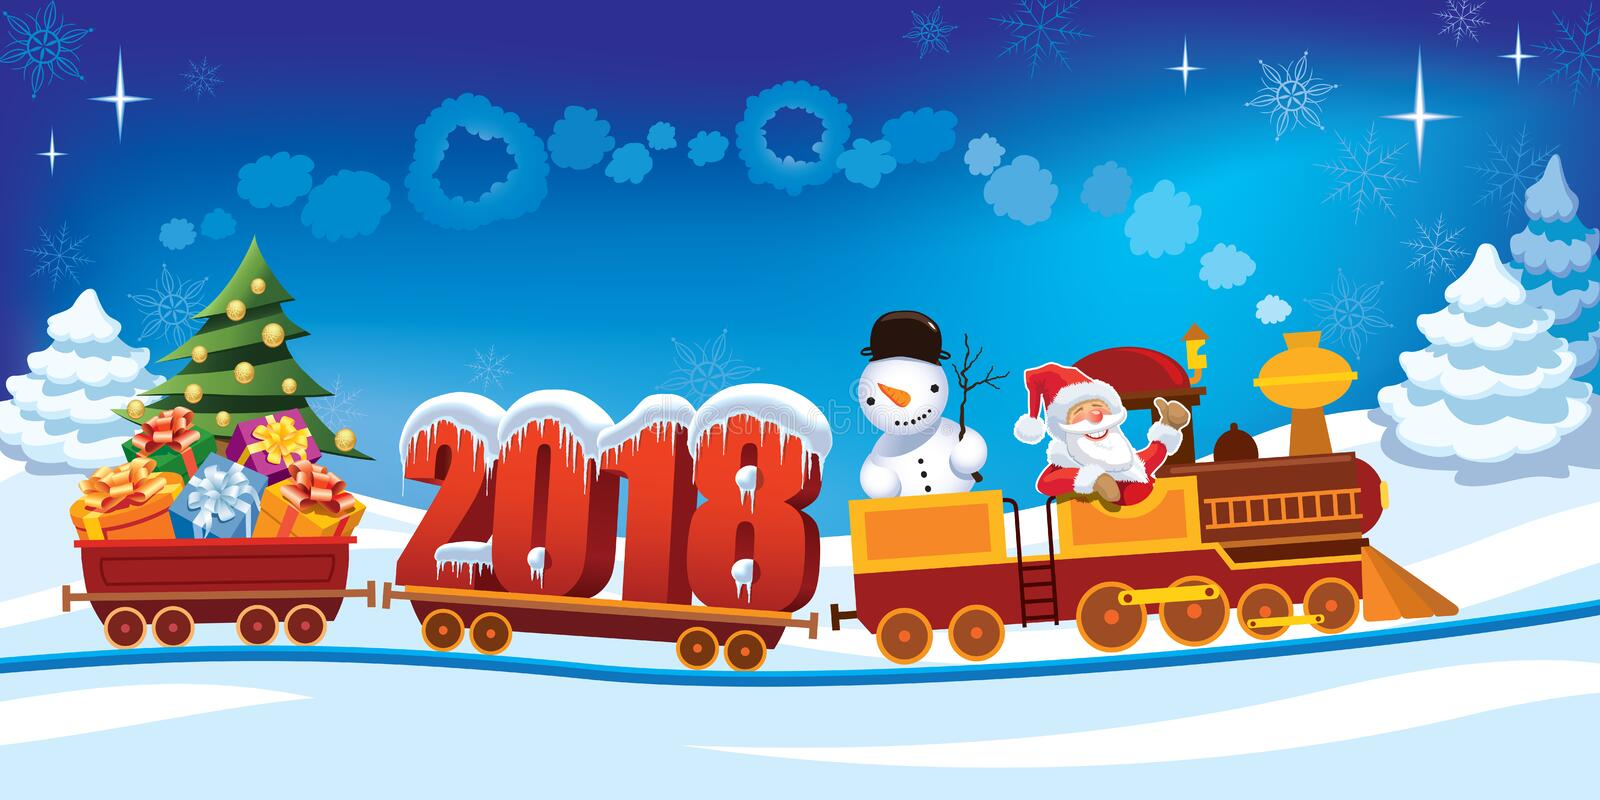 Christmas train 2018 royalty free illustration